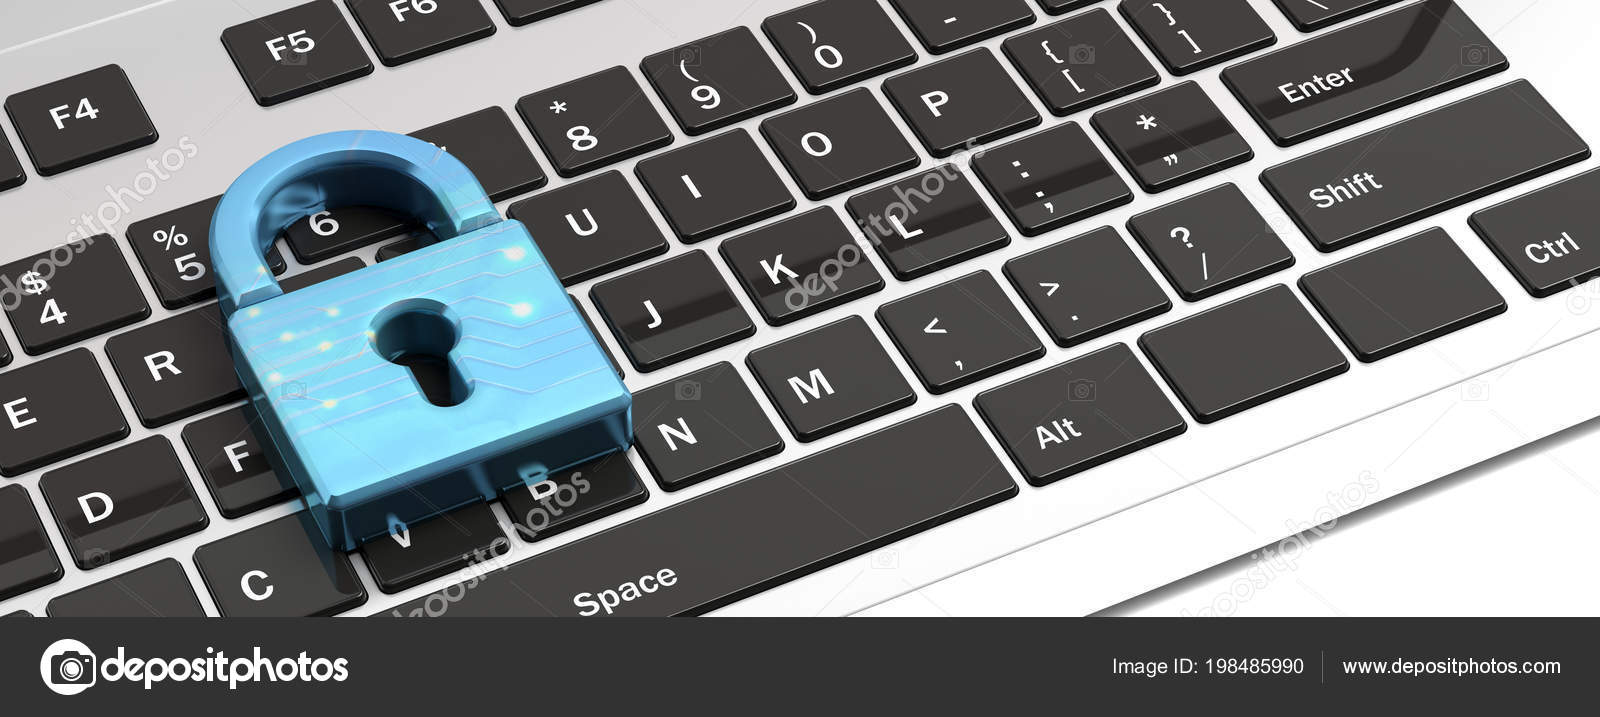 Computer Security Concept Blue Padlock Computer Keyboard Banner Illustration Stock Photo C Gioiak2 198485990